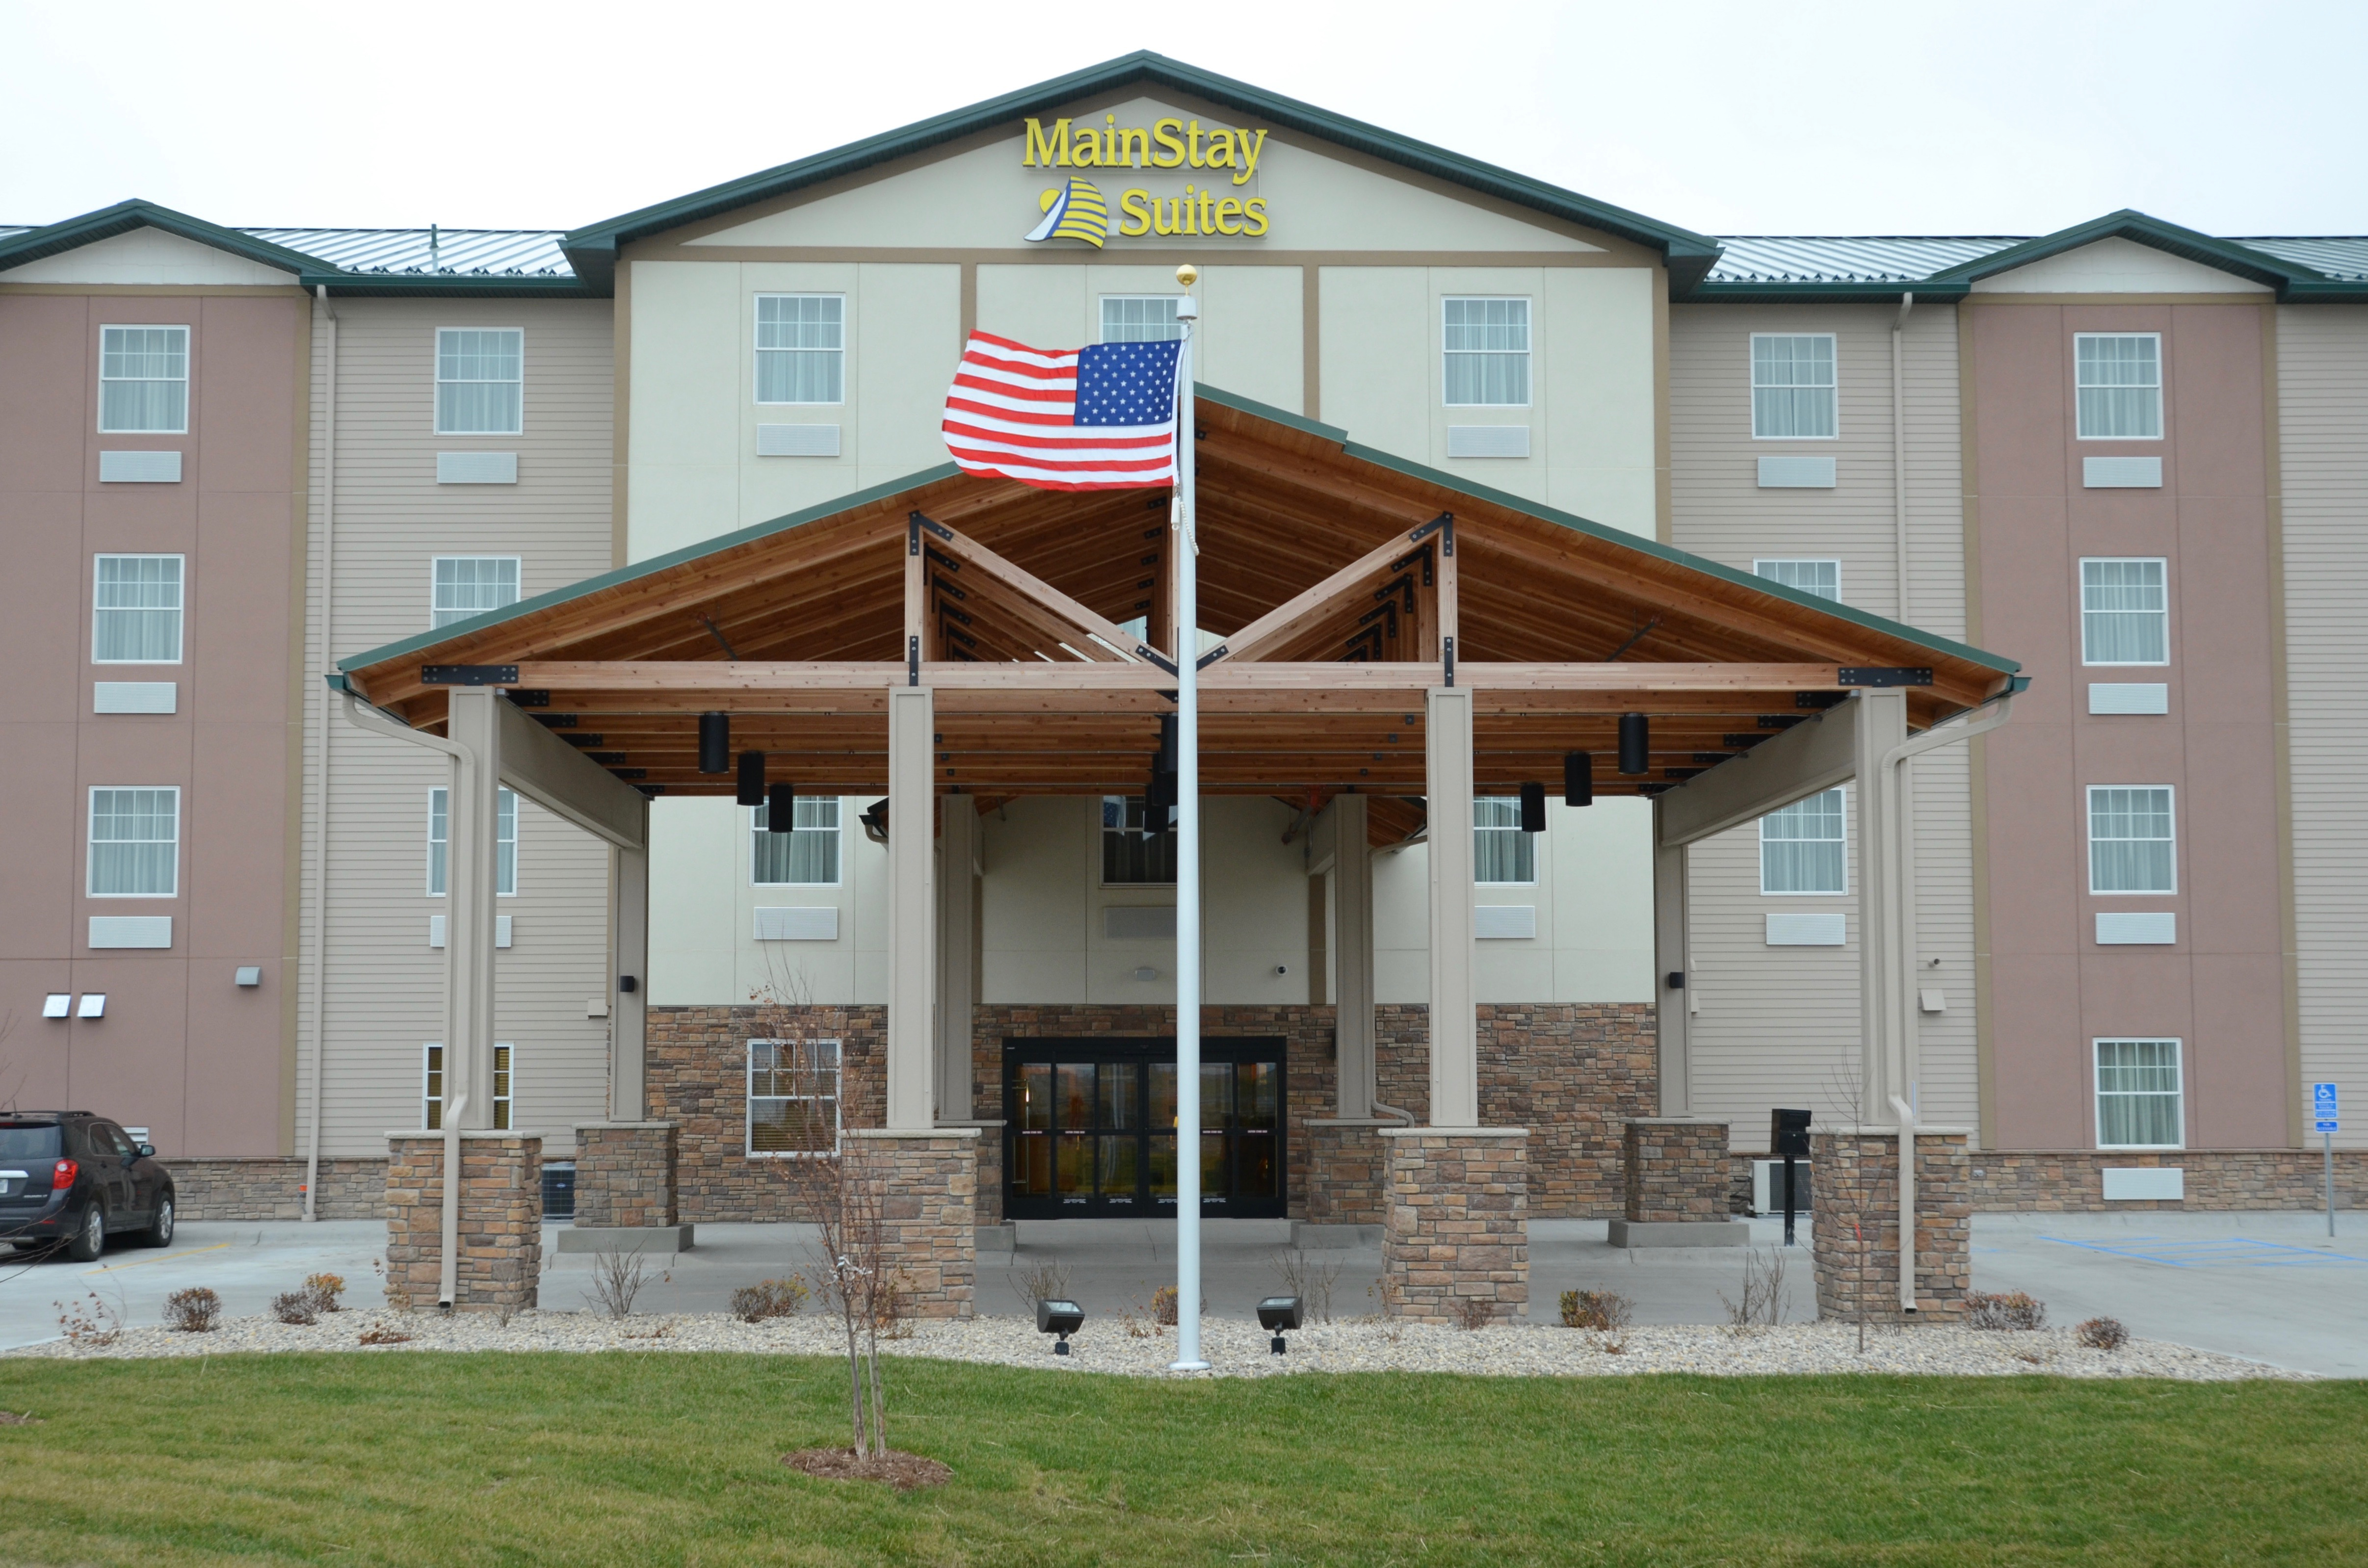 The Hotel Also Offers A Fitness Center And Market For Snacks Is Located On Hwy 2 Between Cashwise Ko